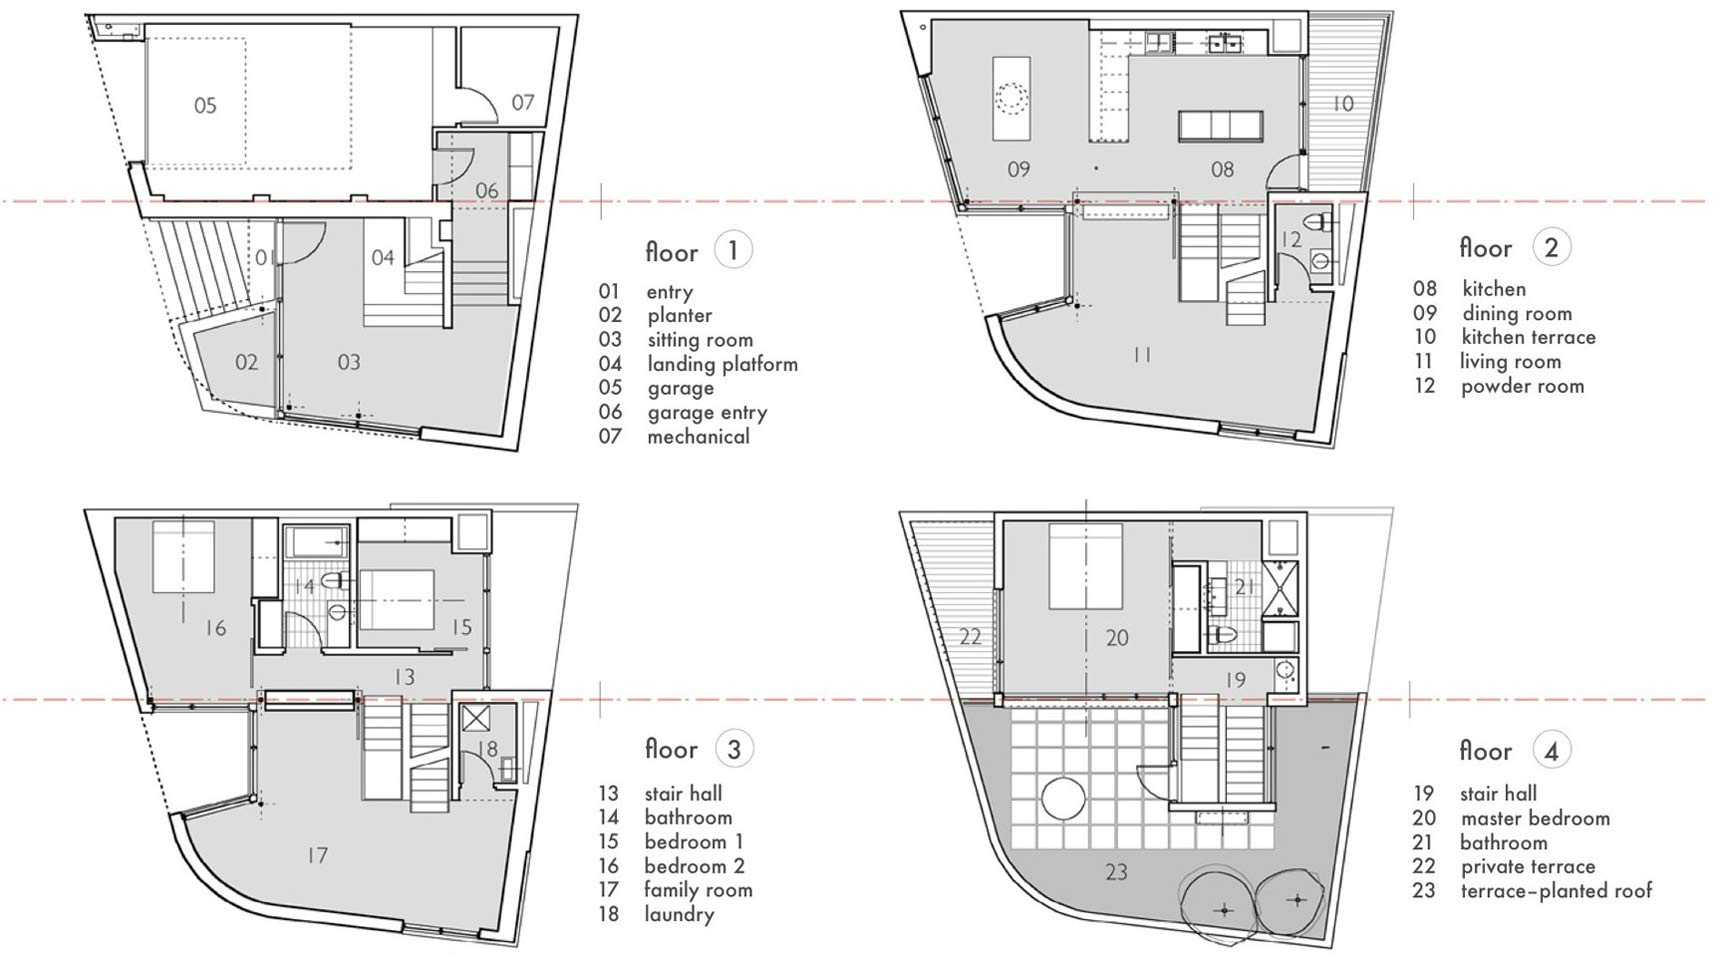 Floor Plans, Terrace, Split Level House in Philadelphia by Qb Design